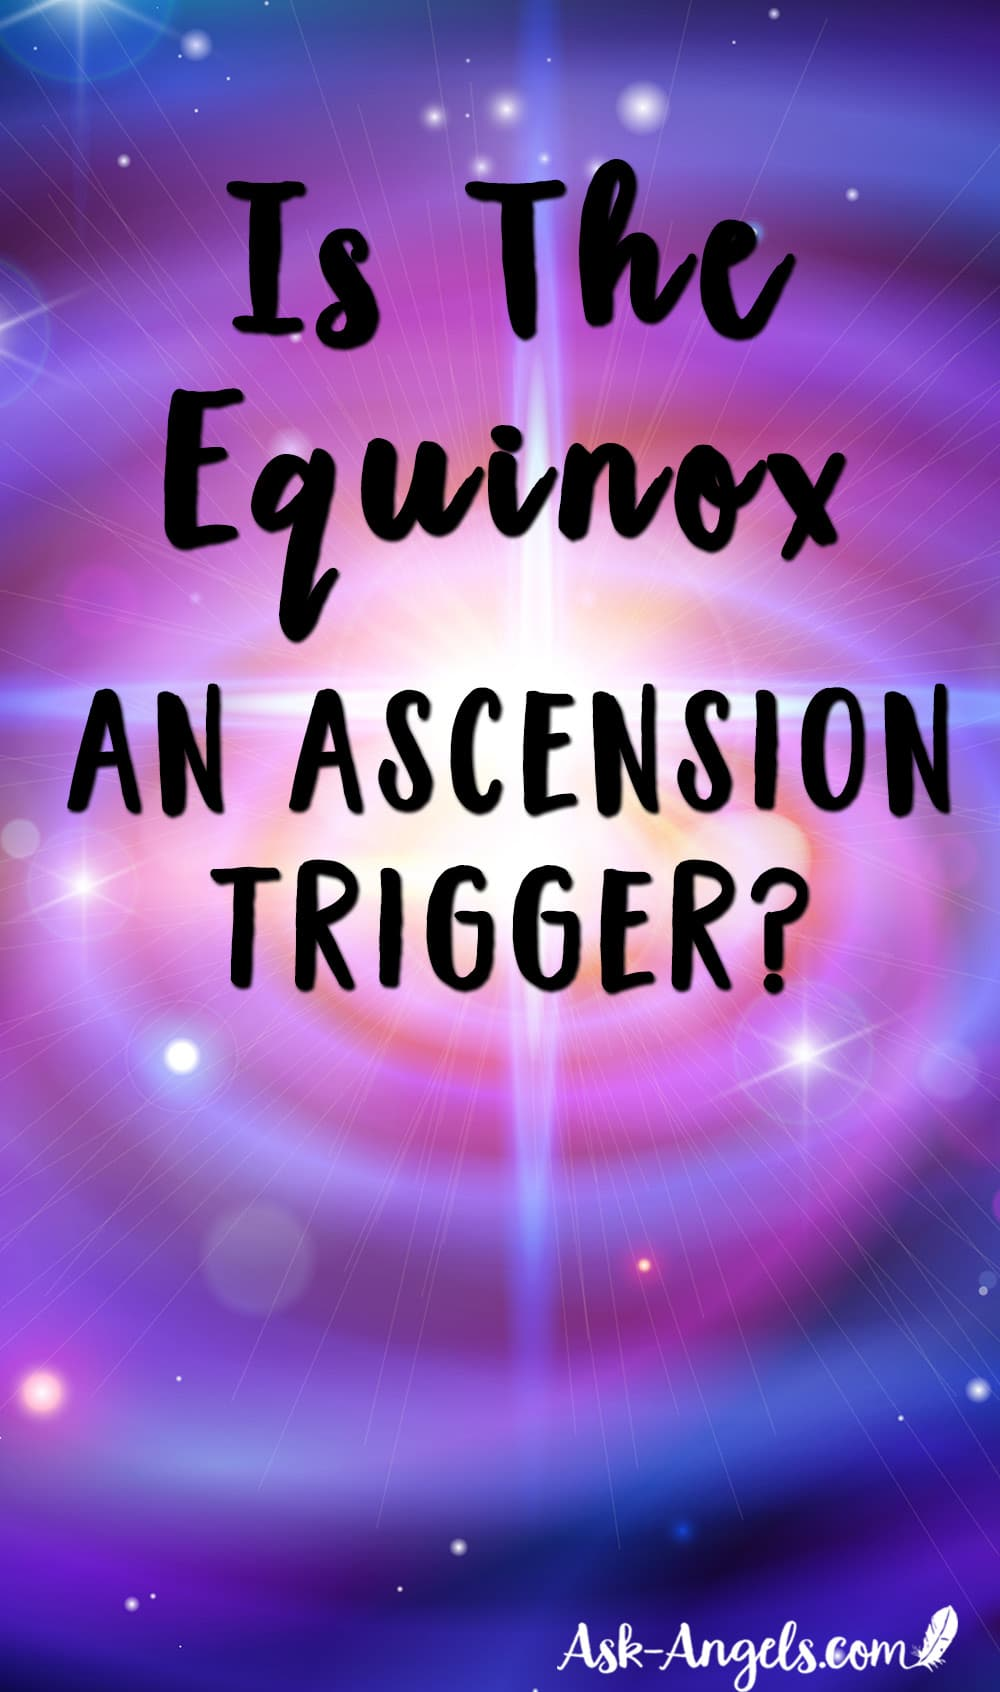 Equinox and an Ascension Trigger